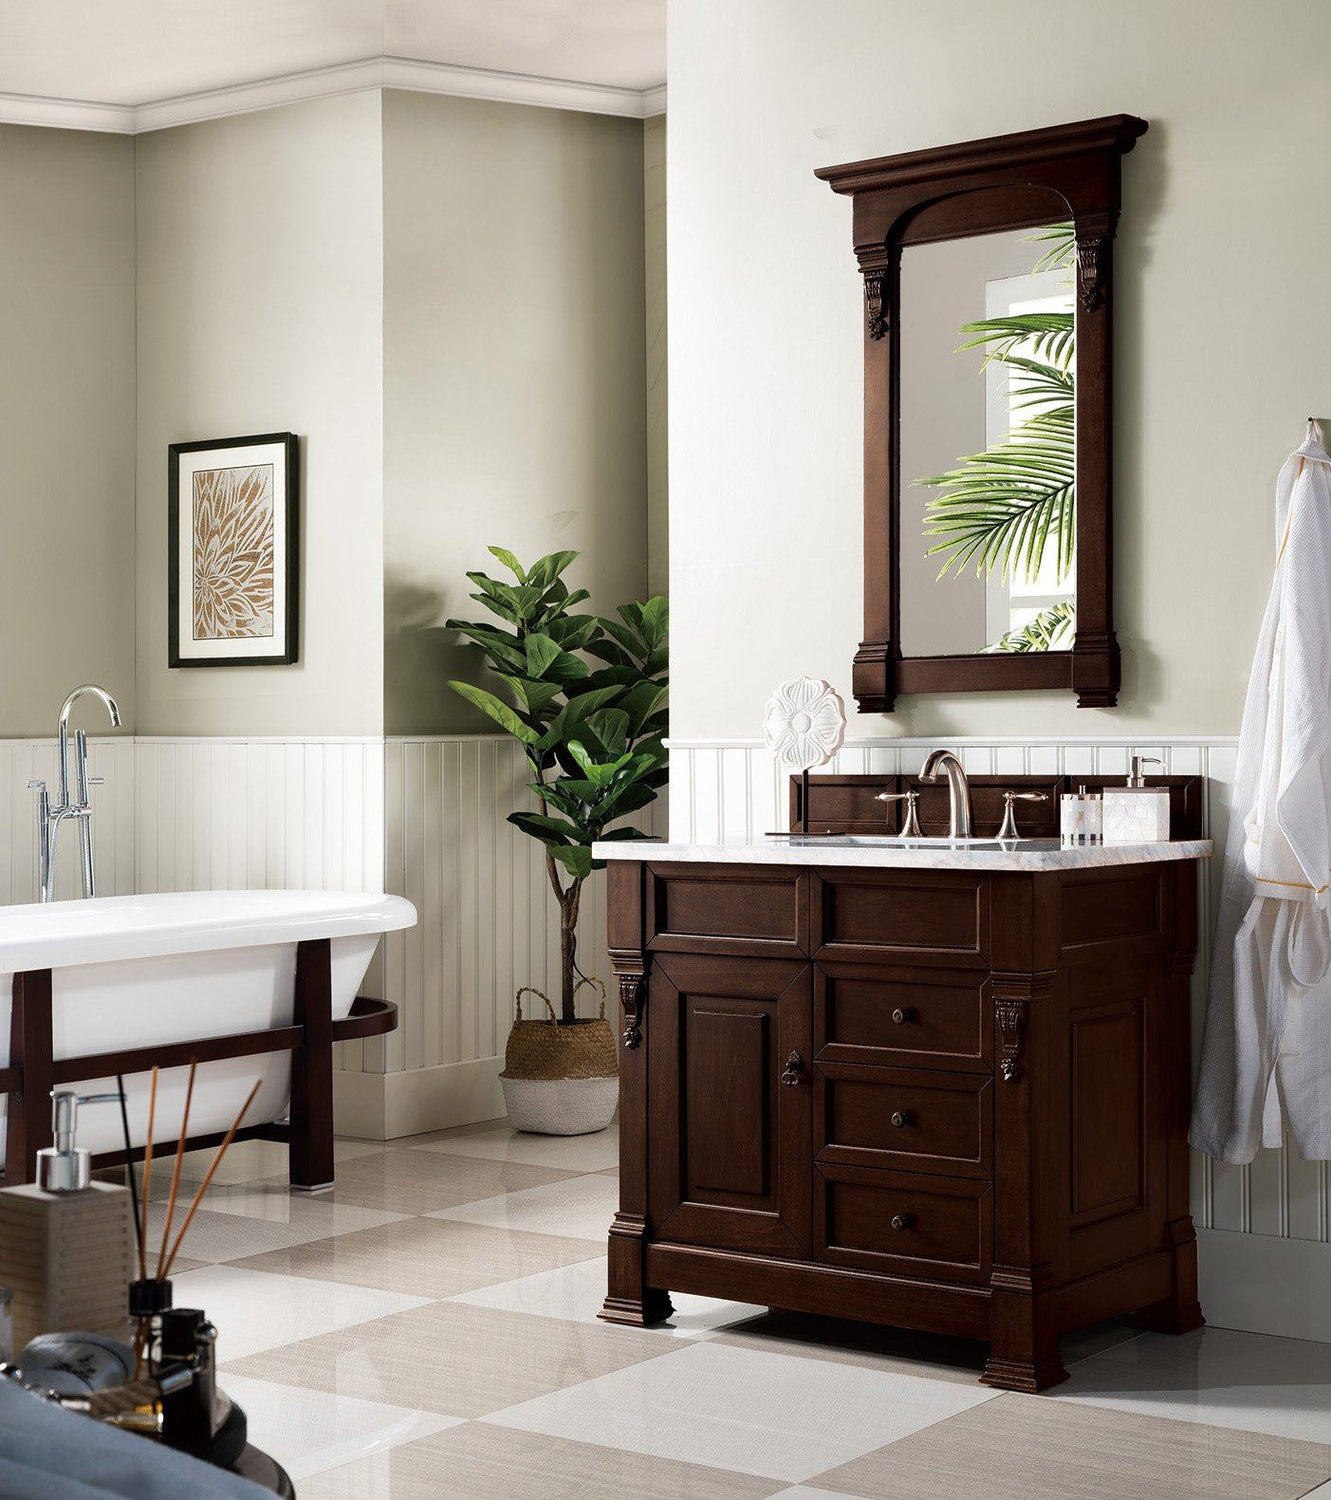 product cabinets fienza category drawer bathroom mambo vanities supplies black peta vanity with drawers